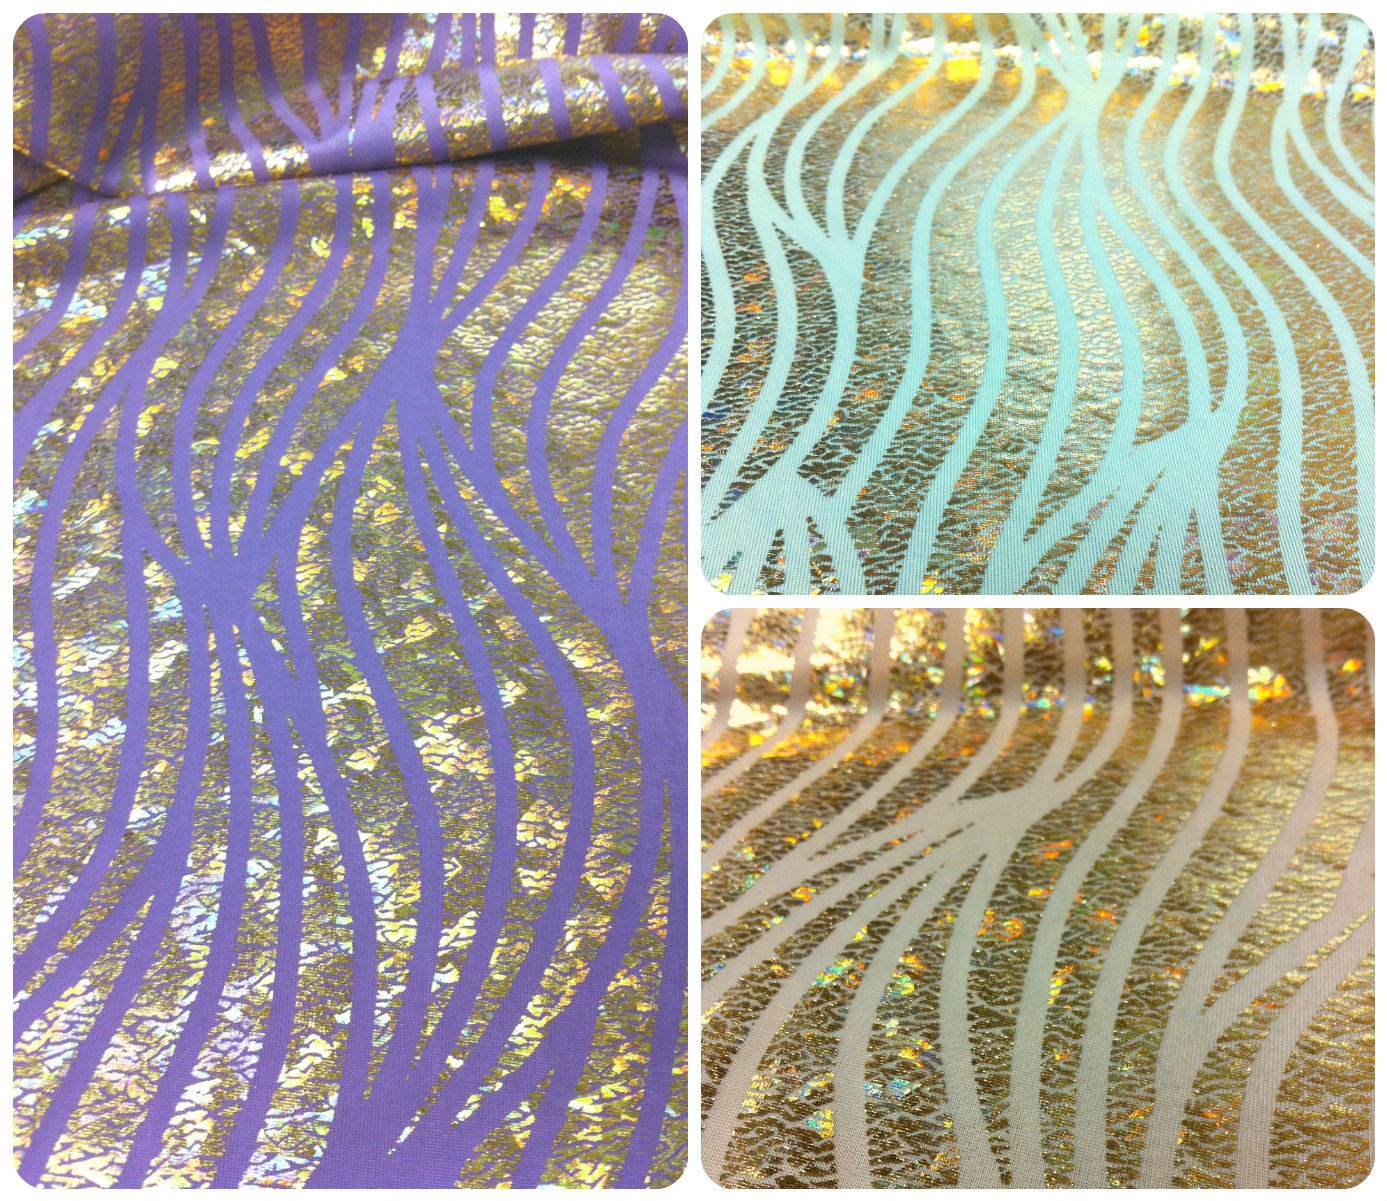 Zebra Pattern Shiny Gold Holographic Foil on Stretch Pastel Colored Polyester Spandex Fabric By the Yard (Tan) by Triple Textile   B012HN32JS